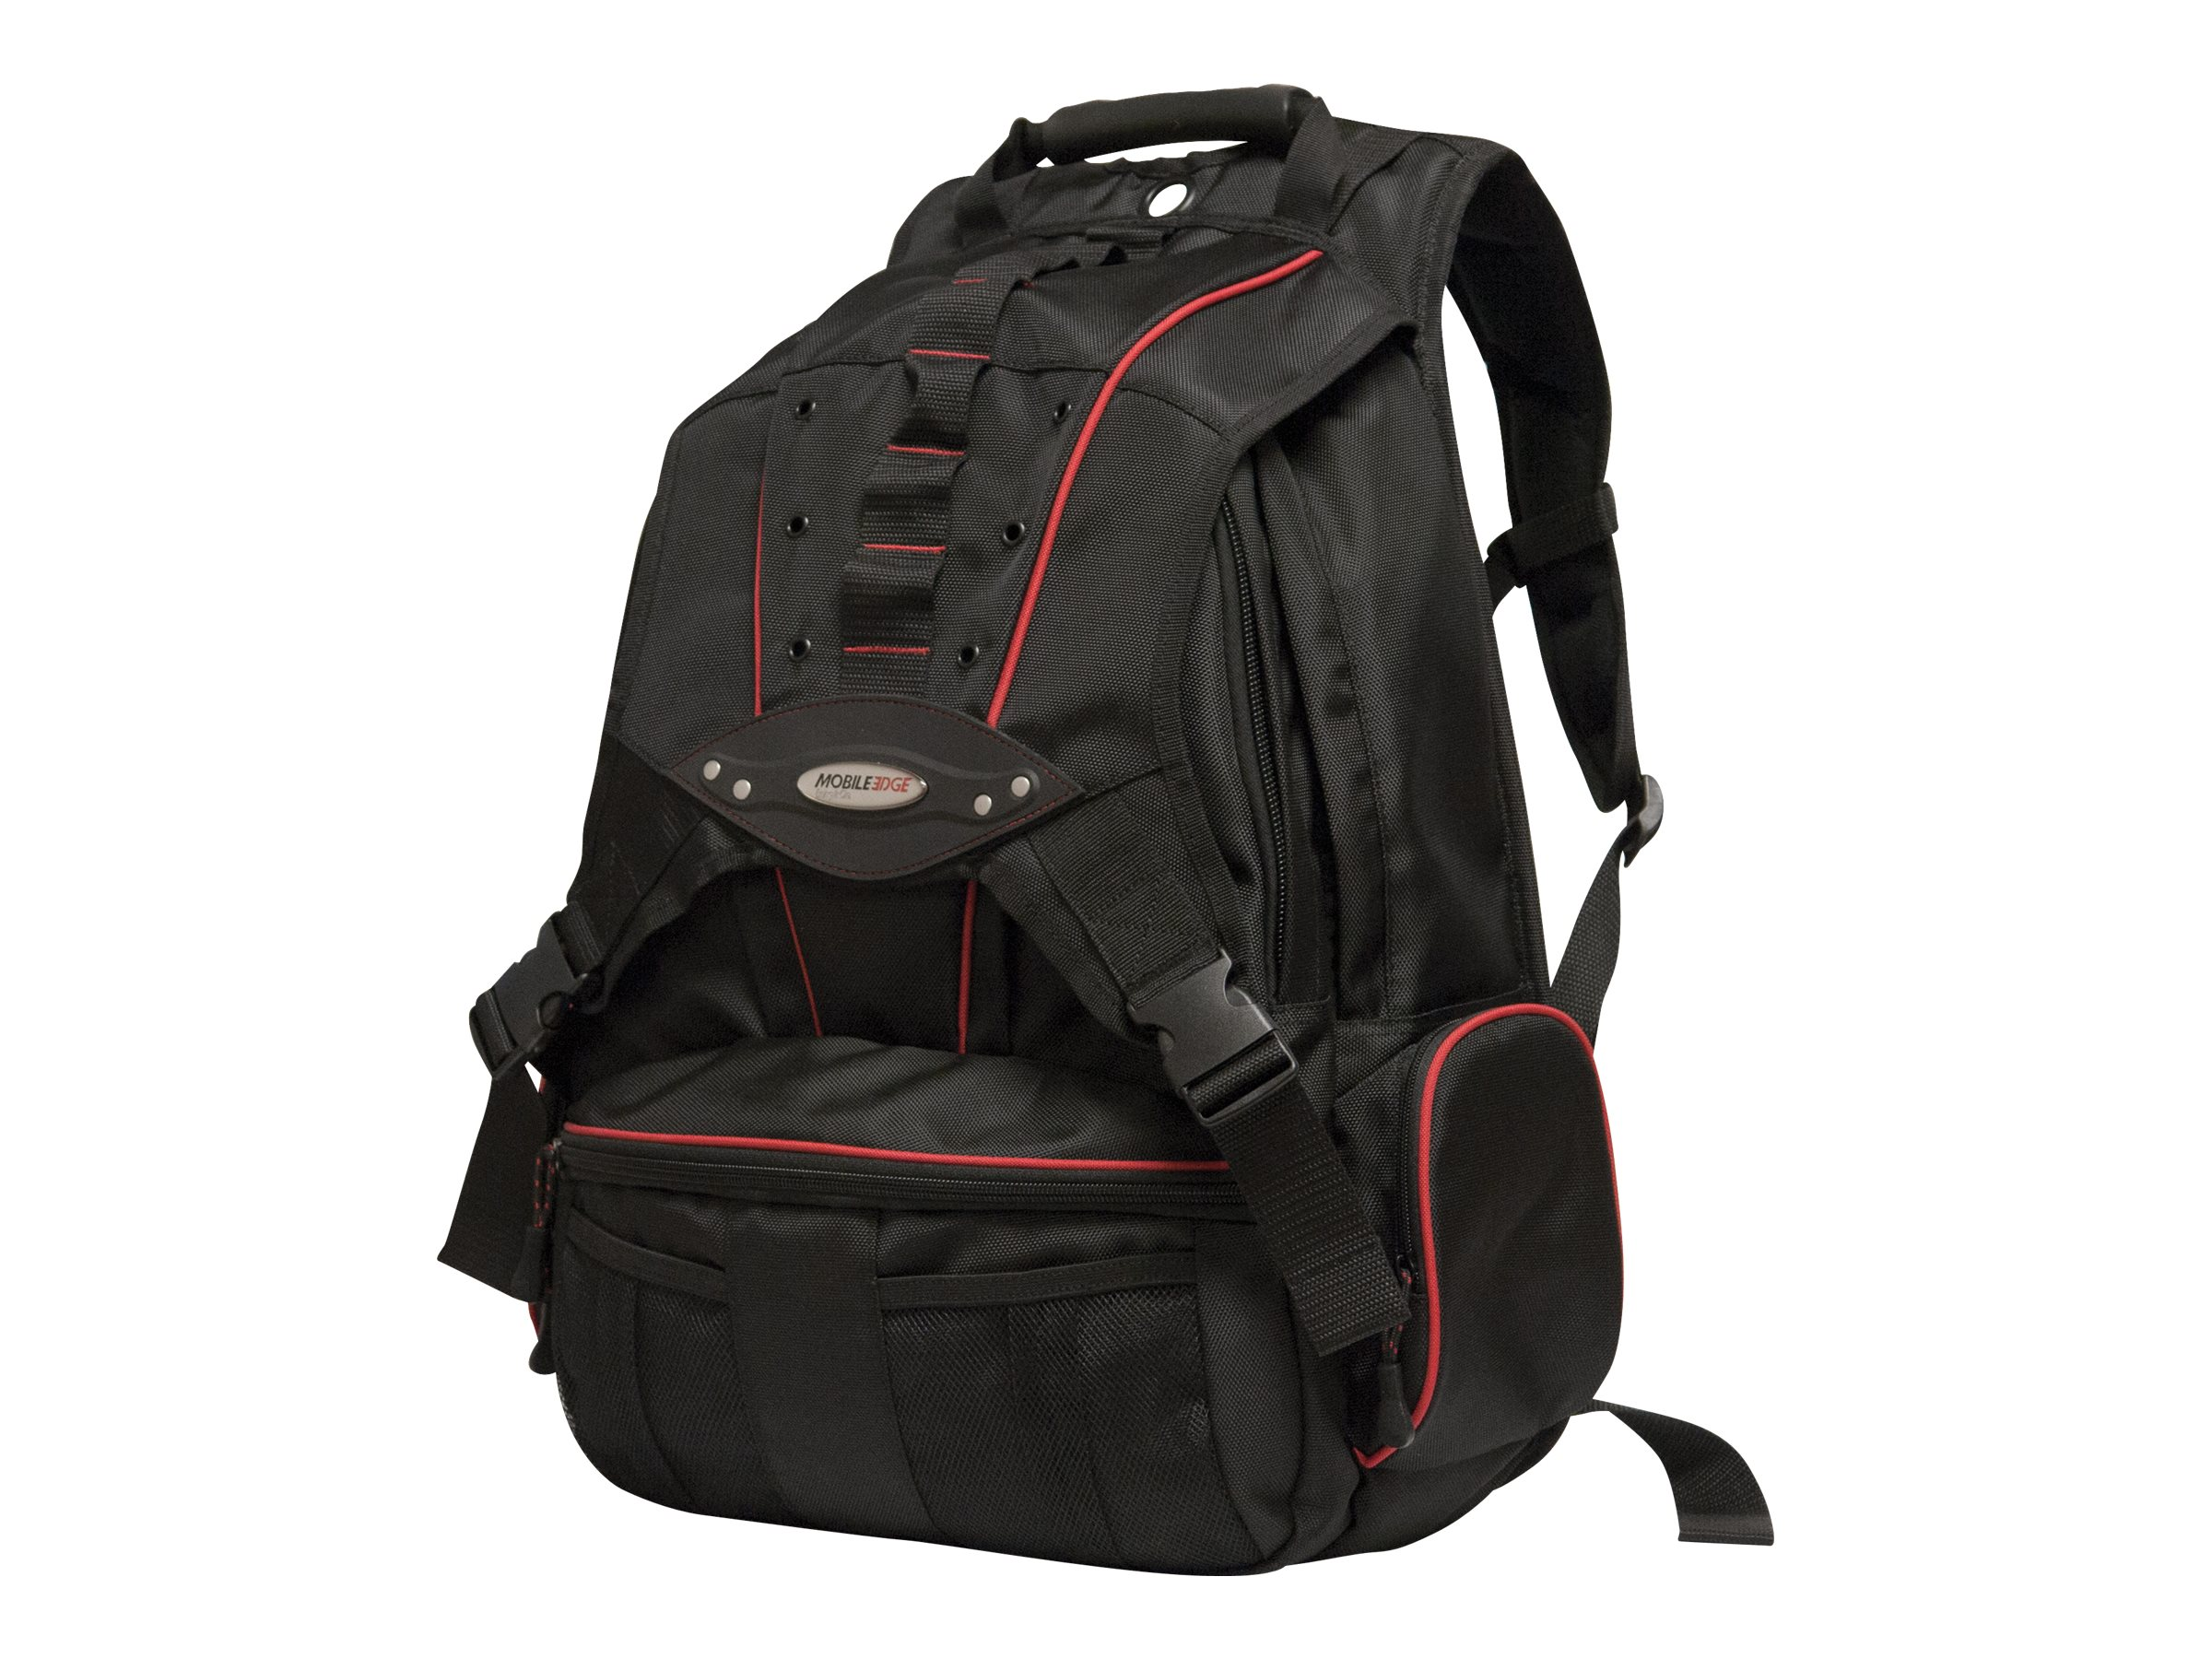 Mobile Edge 17.3 Premium Backpack Black Red, MEBPP7, 15778325, Carrying Cases - Notebook